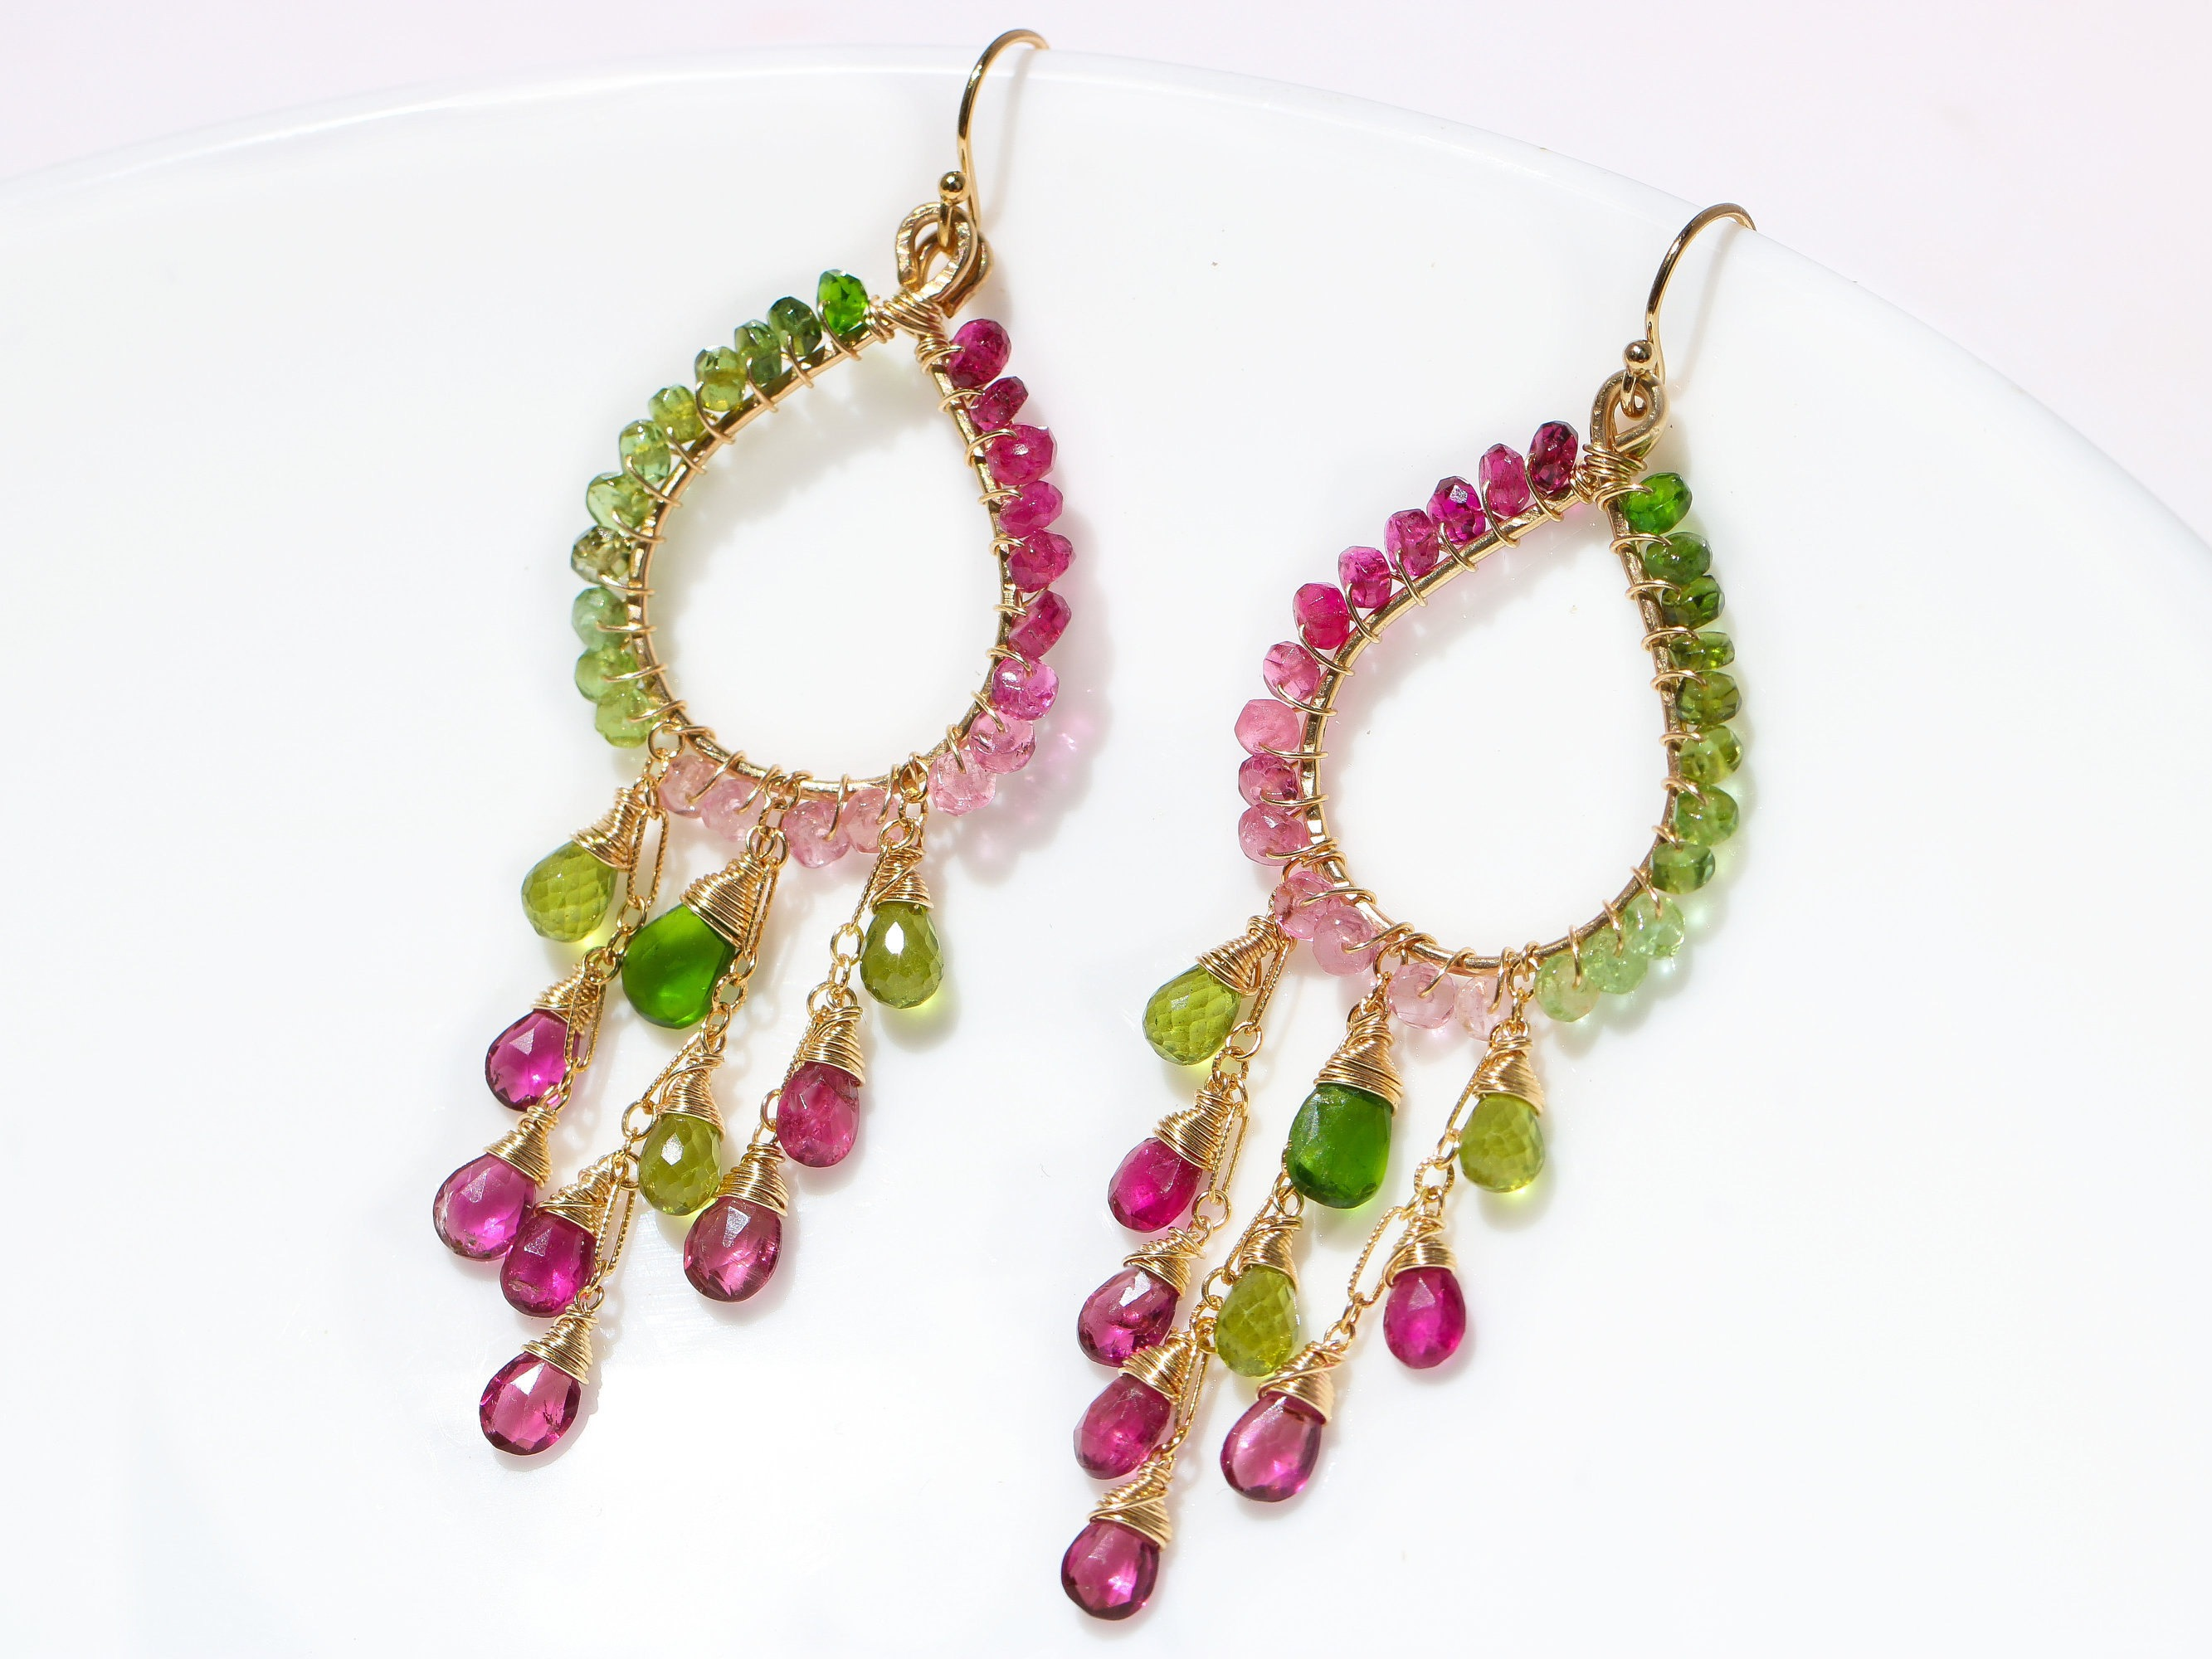 Rubellite Pink and Green Tourmaline Chandelier Earrings in Gold ...